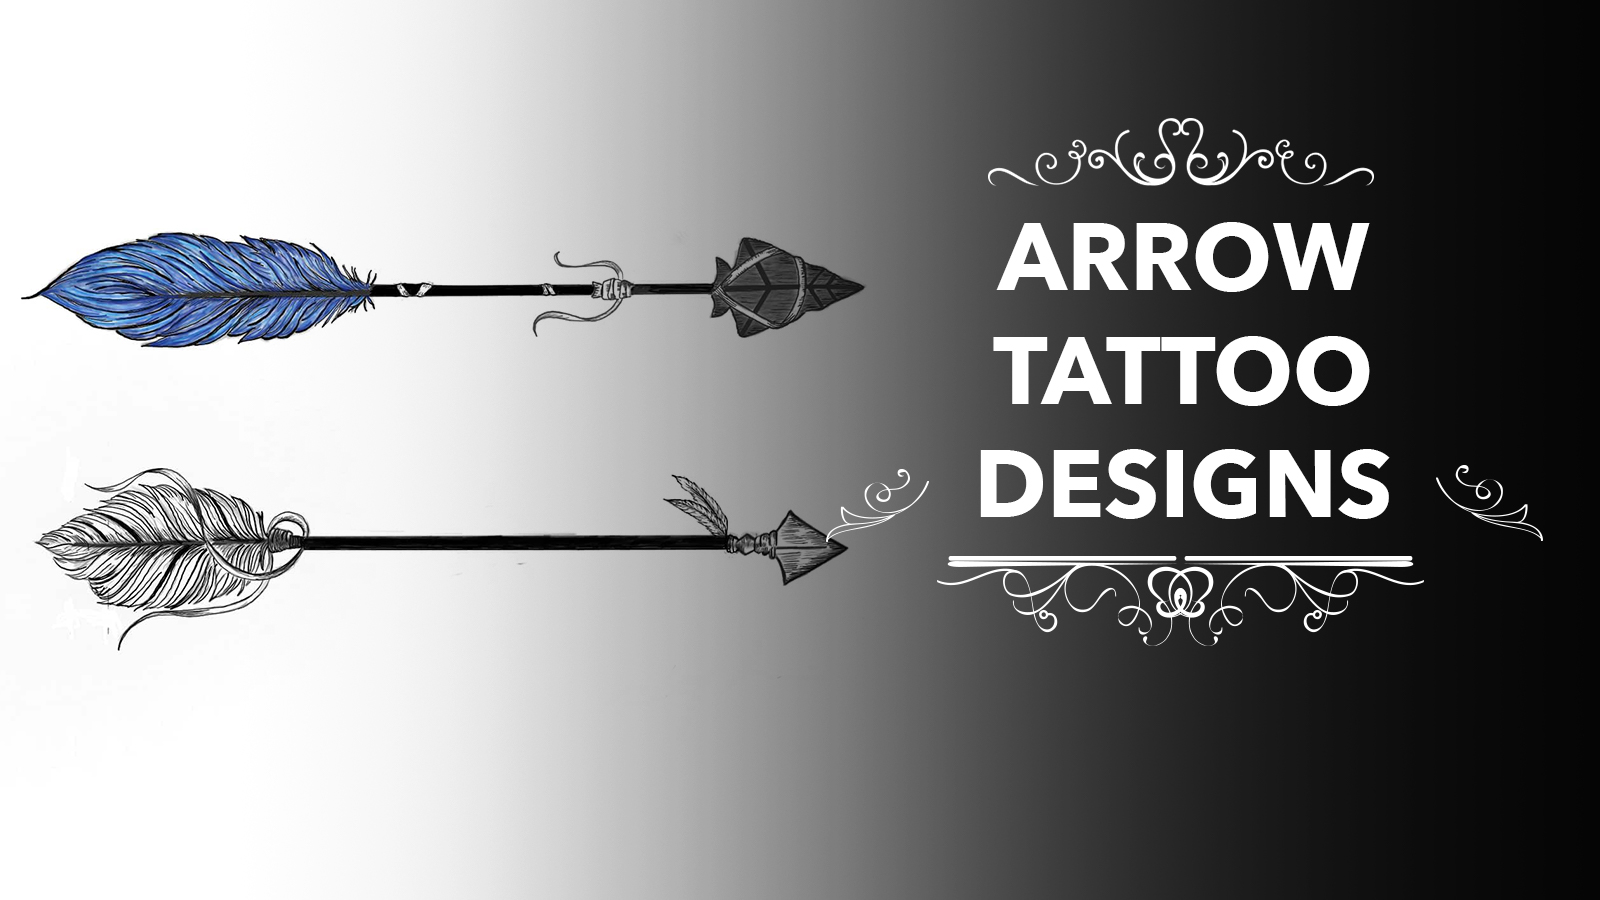 Arrow tattoos were originally based on Native American tribal life, hundreds of years ago. The arrow represented an essential tool in hunter-gatherer communities, serving as a weapon in hunting and in...